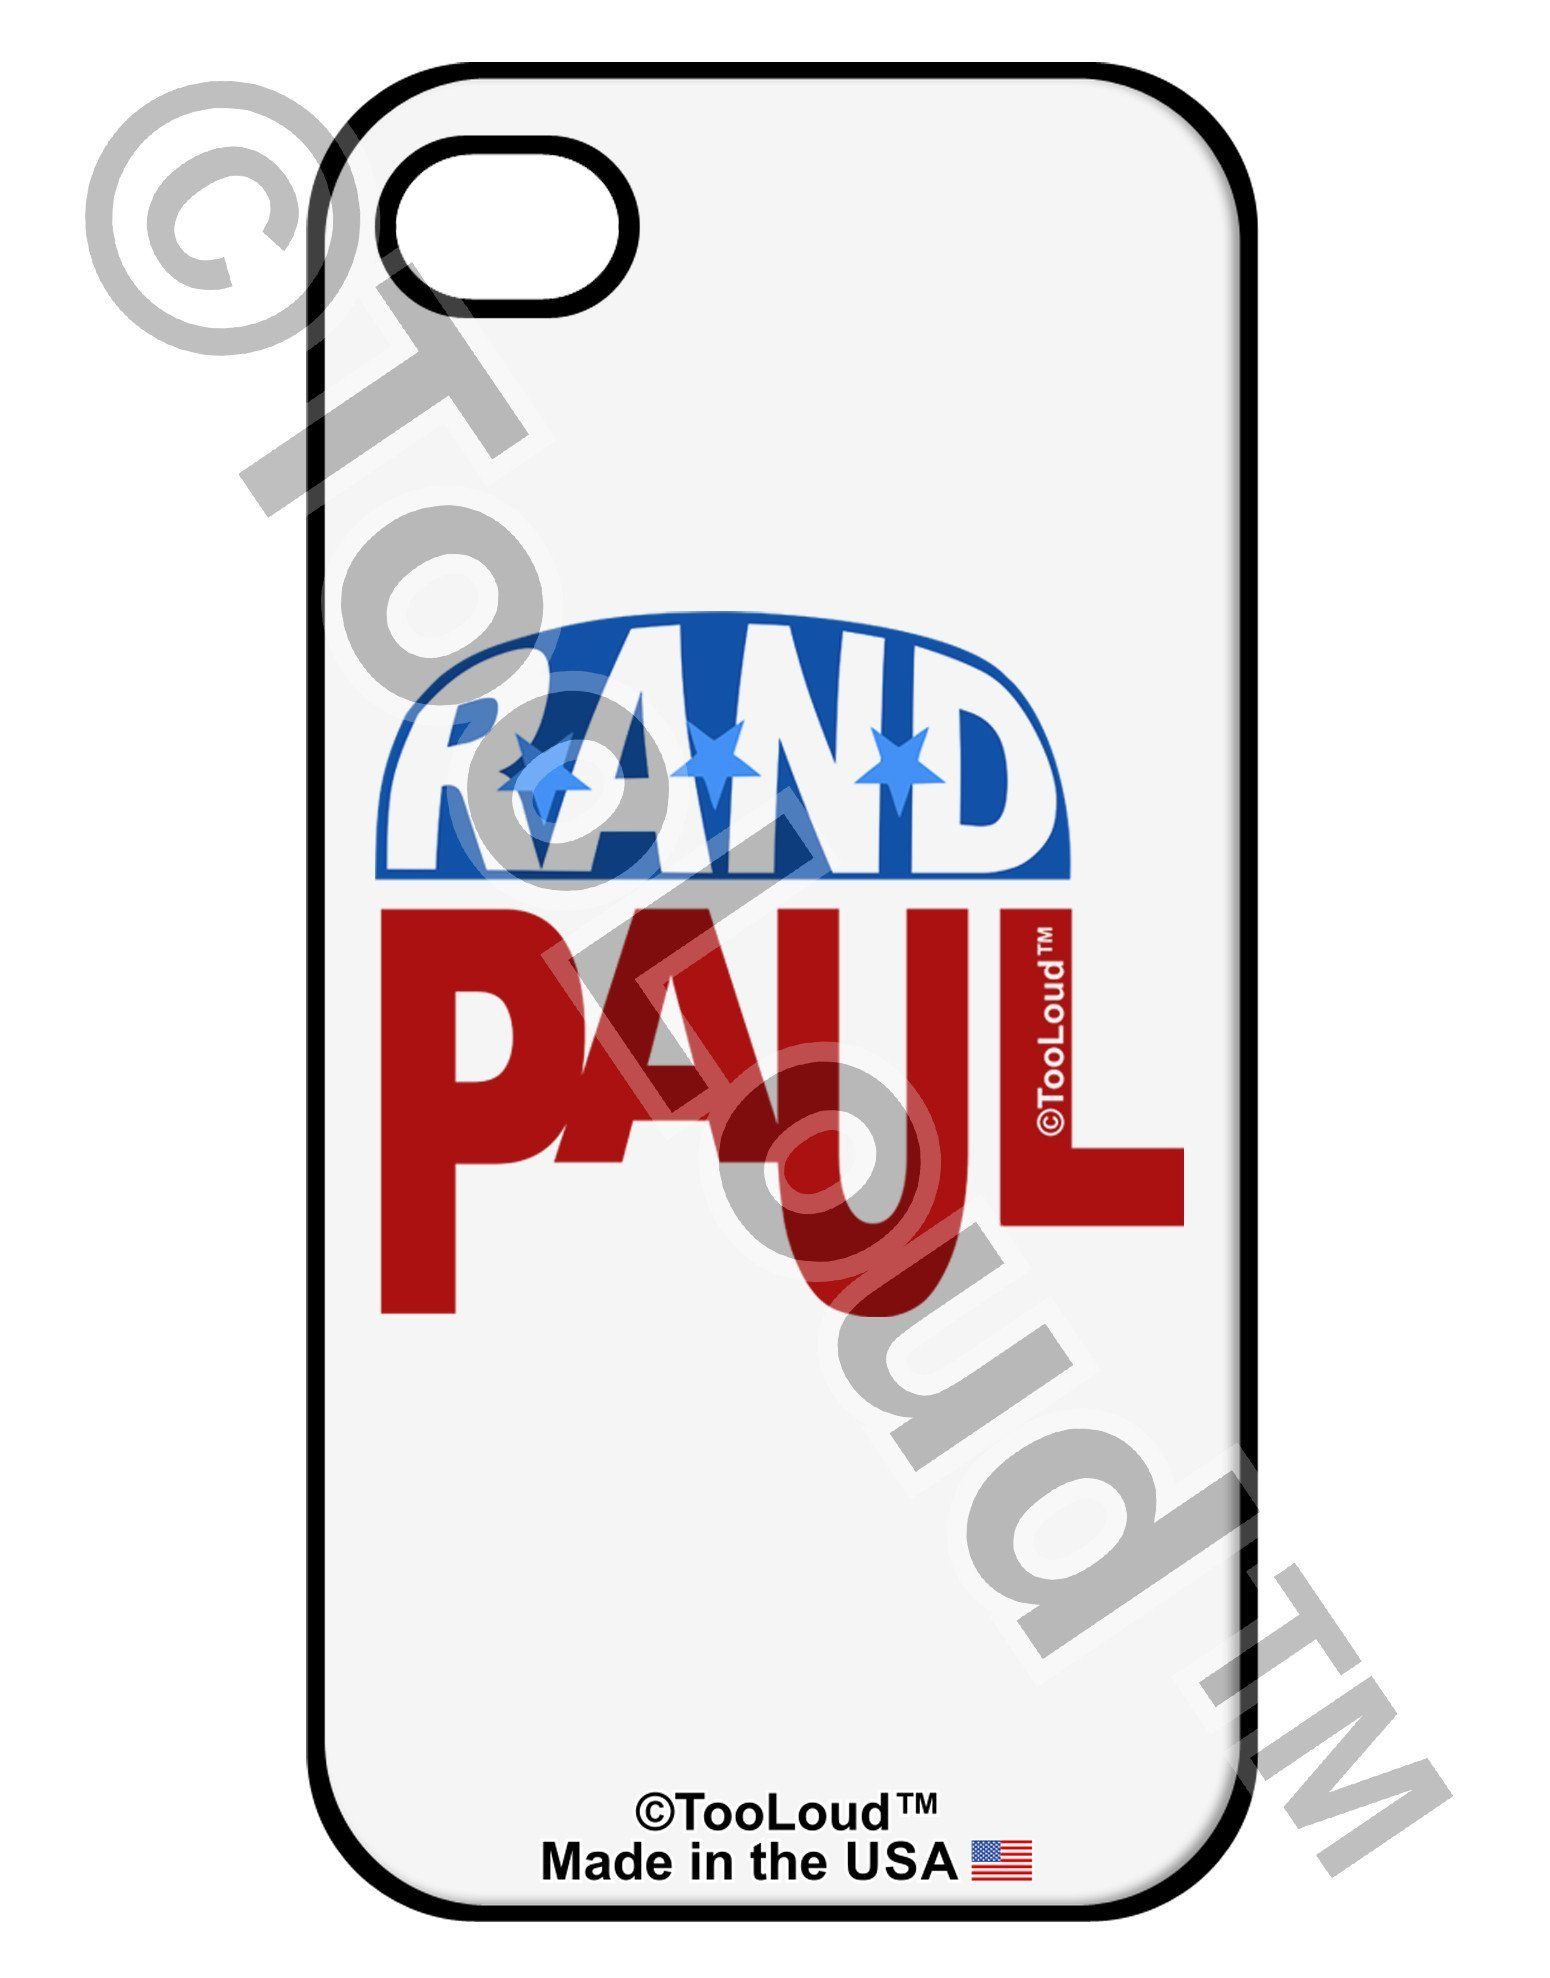 Tm symbol iphone image collections symbol and sign ideas rand paul republican symbol iphone 4 4s case republican symbol rand paul republican symbol iphone 4 buycottarizona